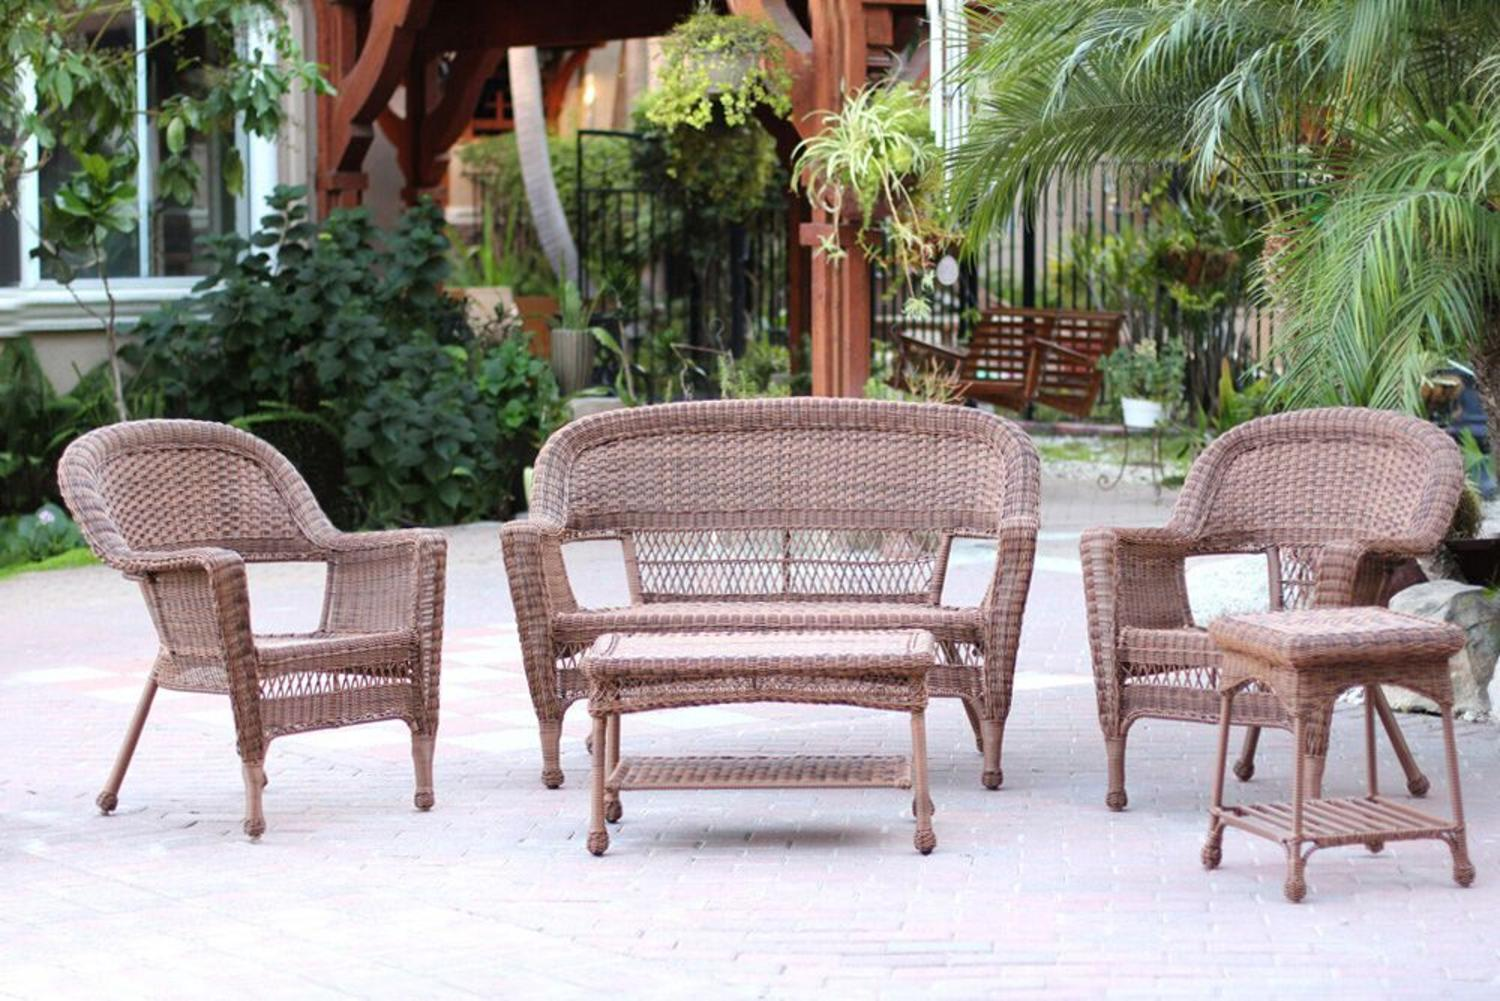 4-Piece Swann Honey Brown Wicker Patio Chairs, Loveseat and Table Furniture Set by CC Outdoor Living